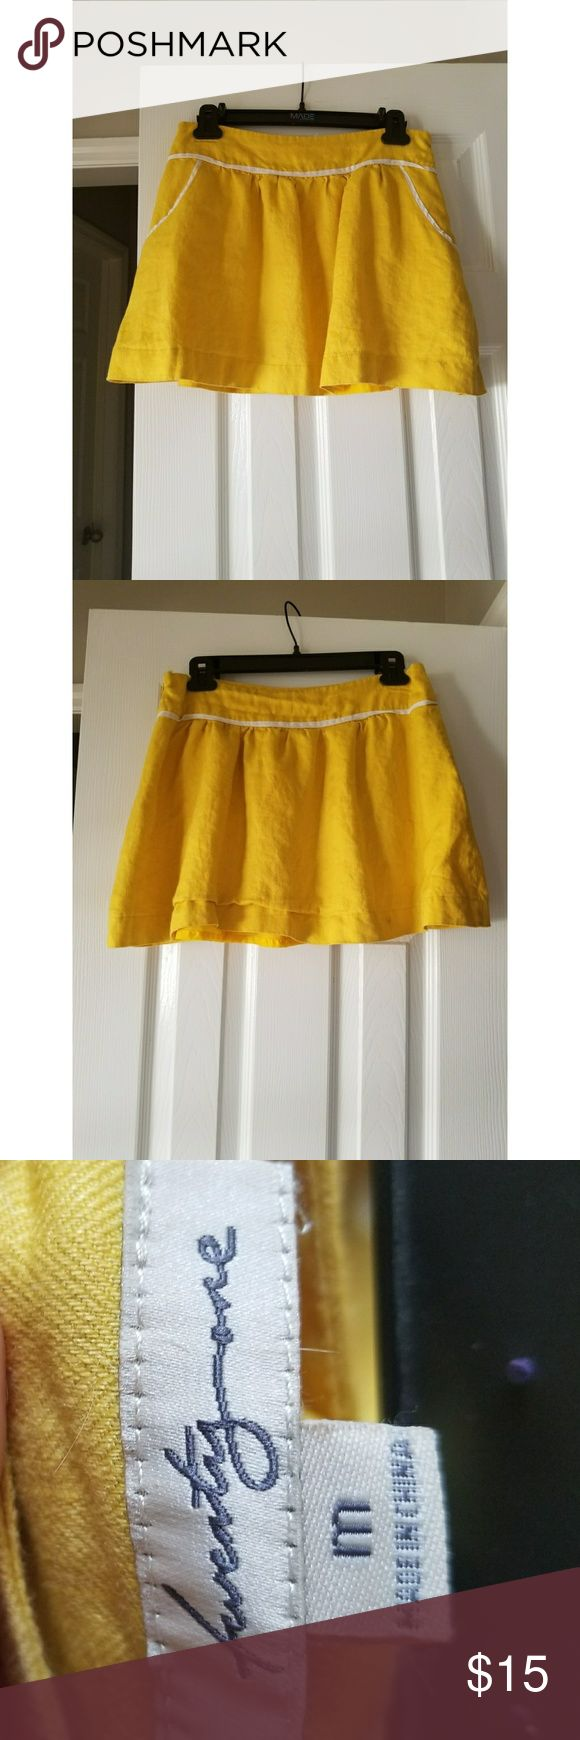 Forever 21 Skirt with Pockets Adorable yellow linen-style skirt with white trim and yellow pockets.  Great condition. Forever 21 Skirts Mini